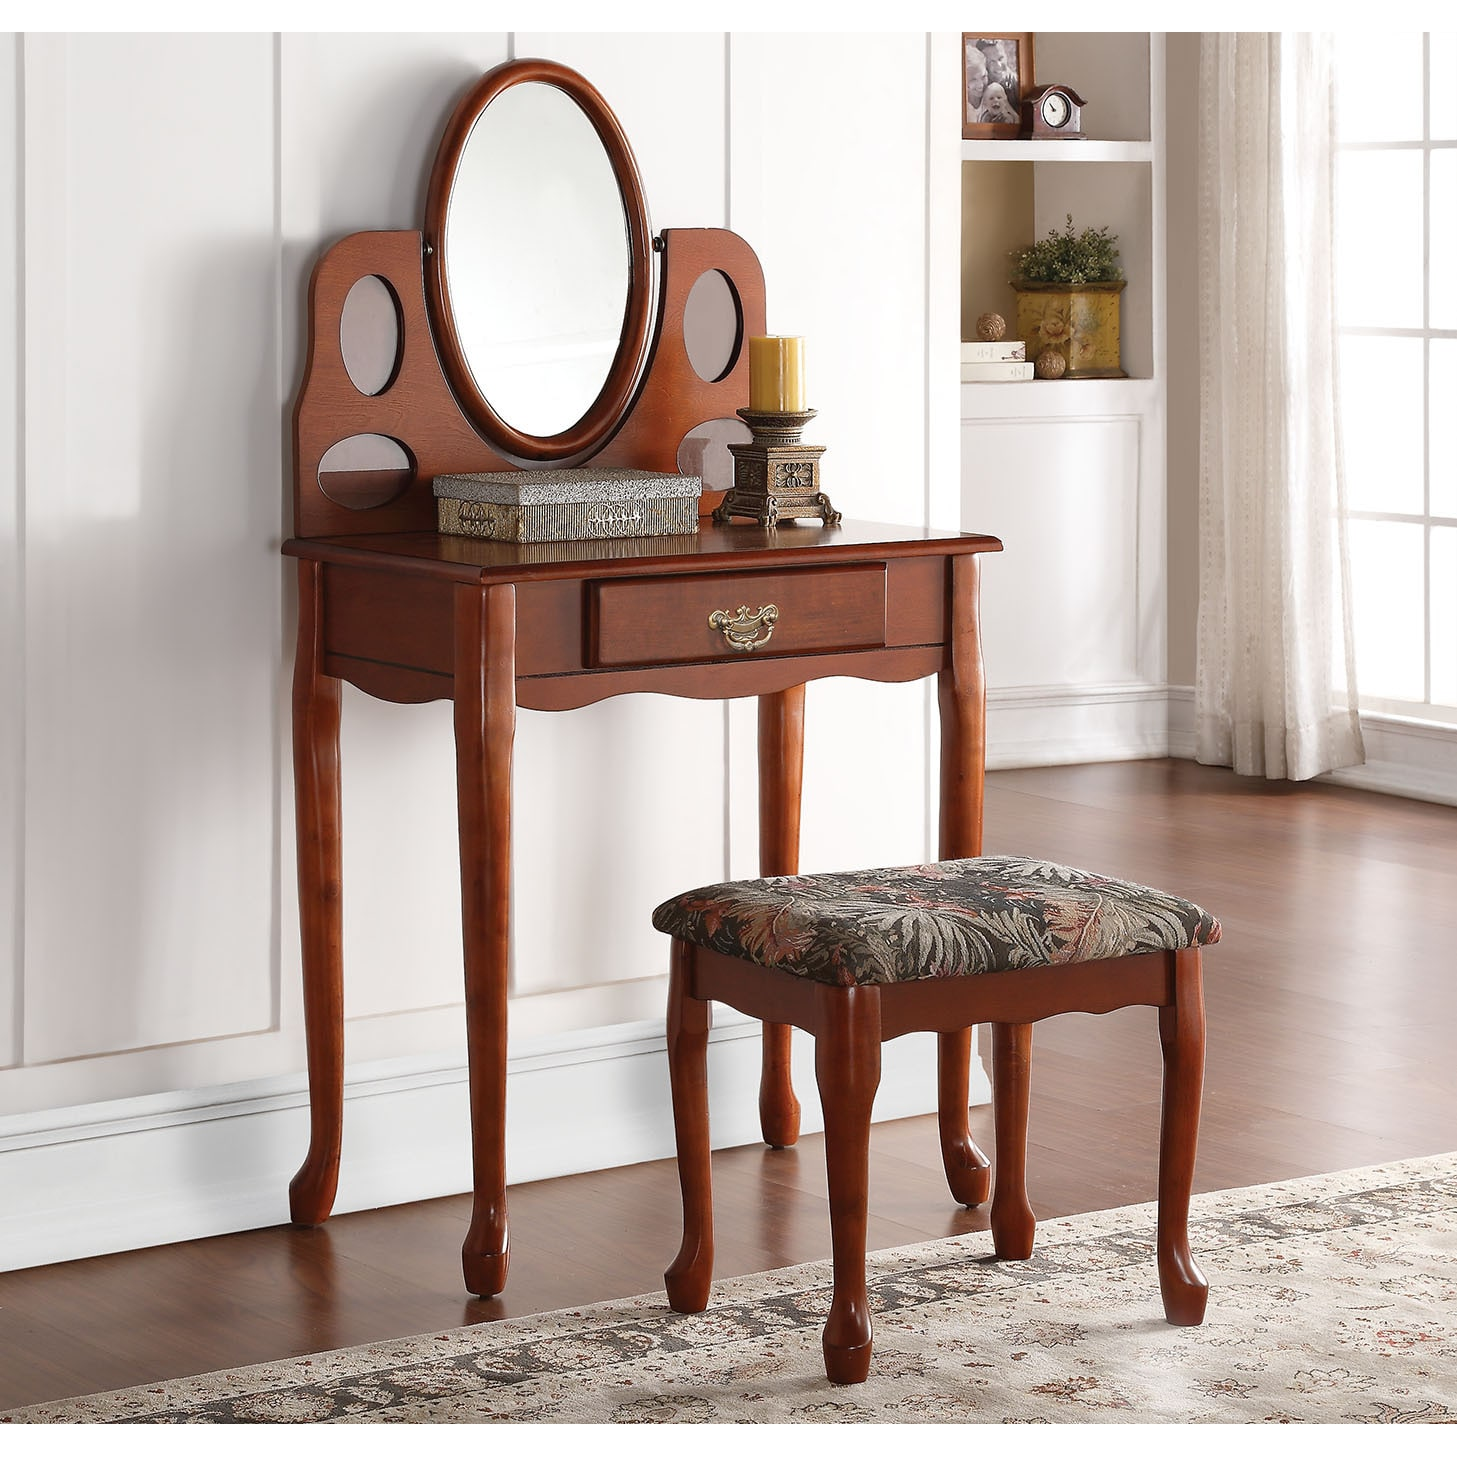 "ACME Aldine Oak Vanity Set (Oak, 28""L x 16""W x 51""H), Brown"